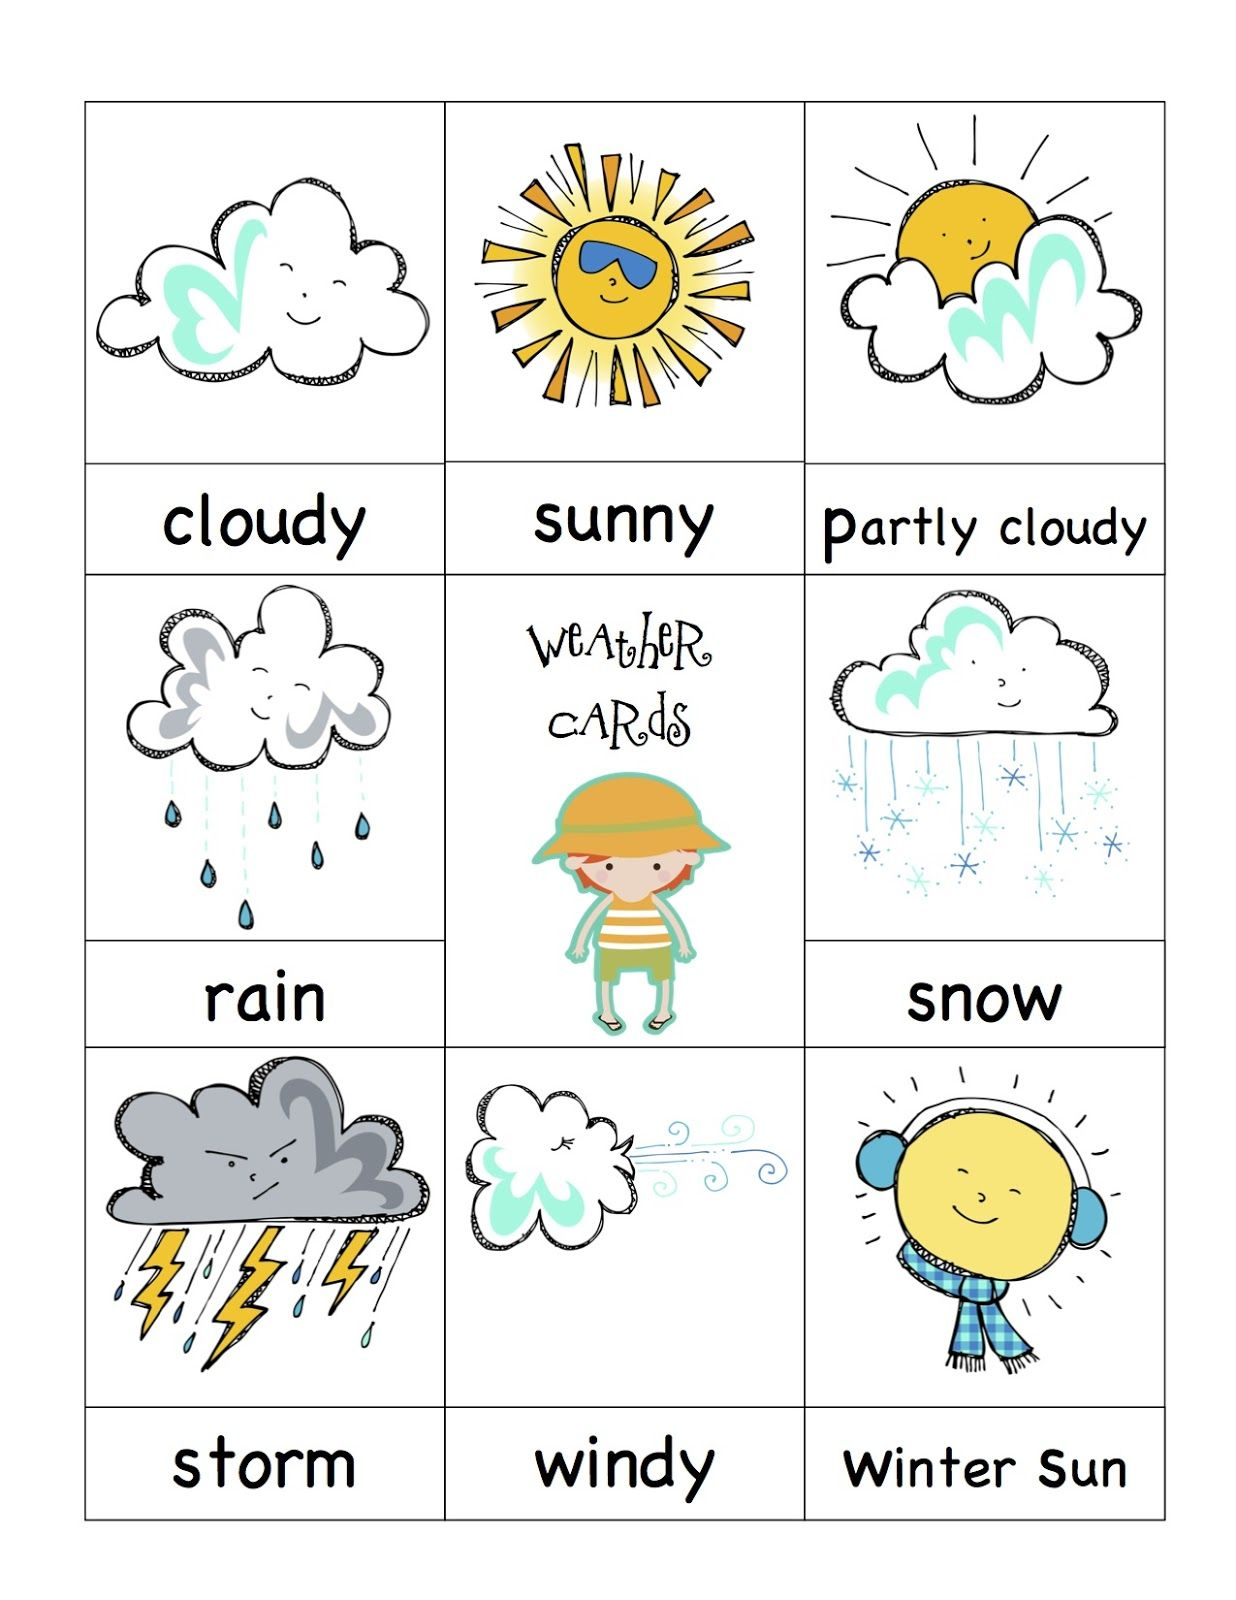 Weather Cards would be fun to have a 'weather man/girl